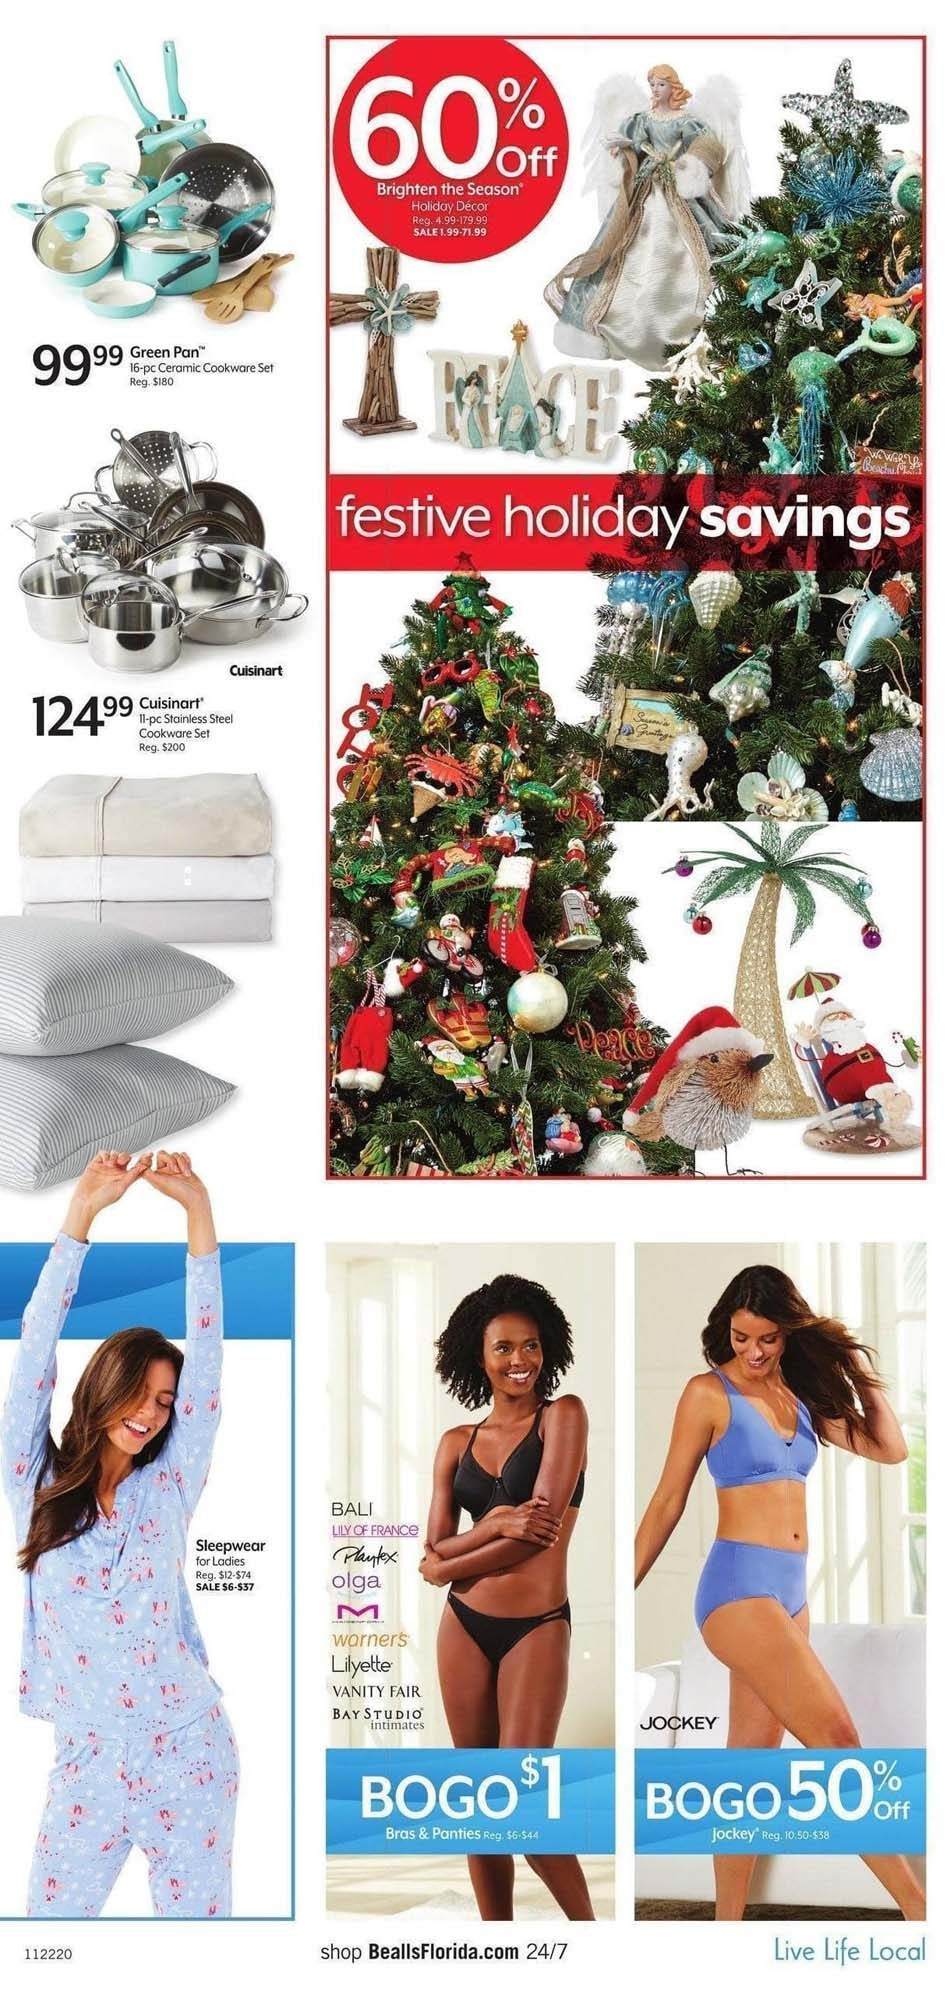 Bealls Florida Black Friday 2020 Page 5